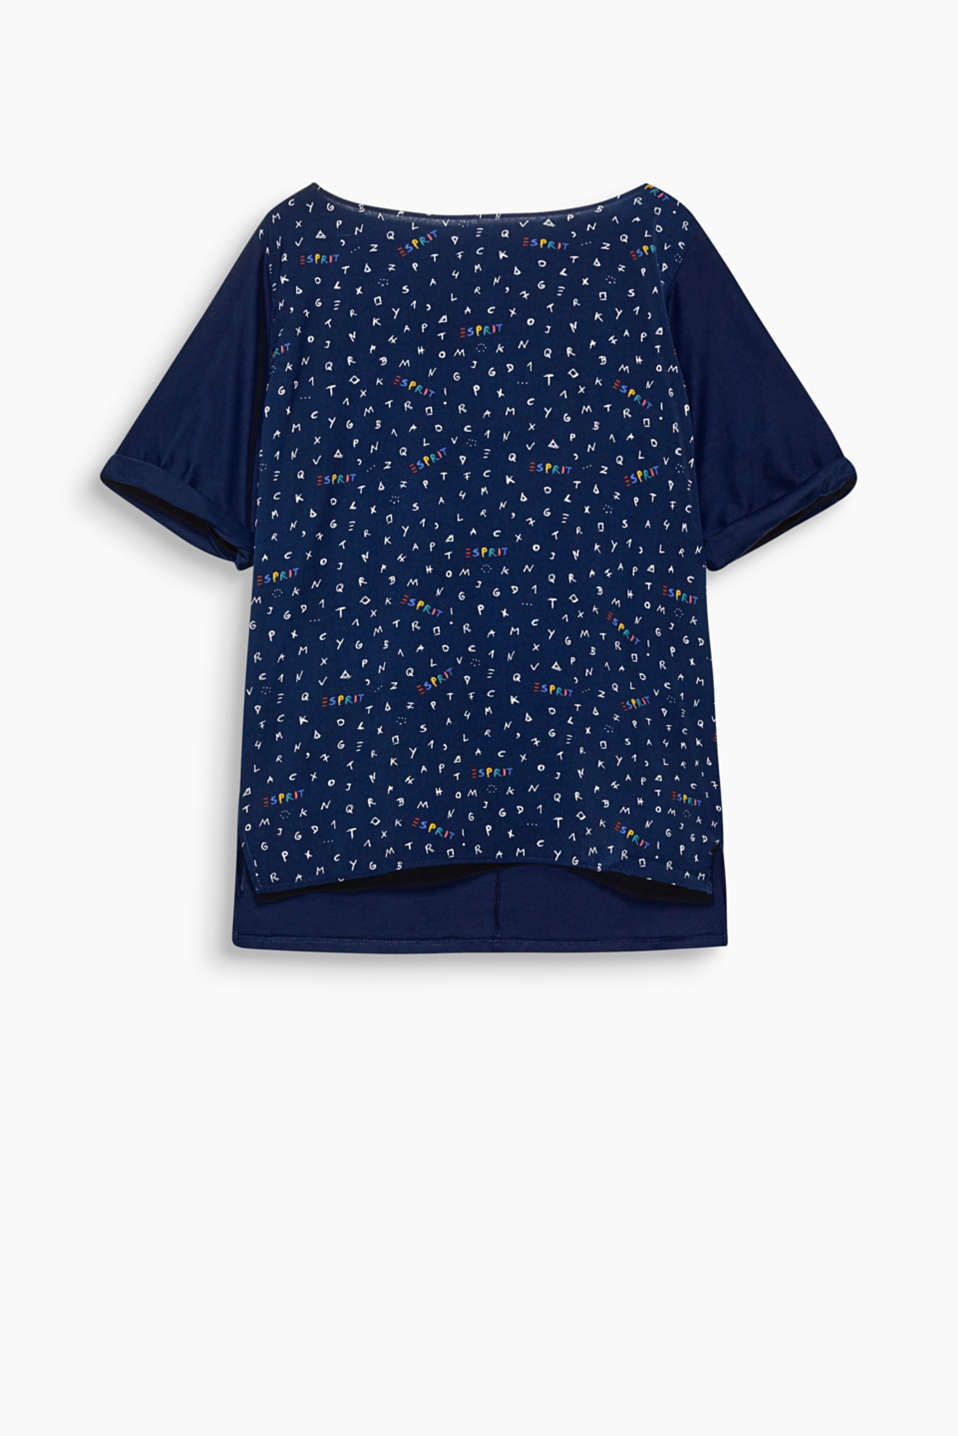 Feel good, look good, do good - Mit Wohlfühl-Garantie: oversized Blusen-Shirt mit Print aus recyceltem Material-Mix!